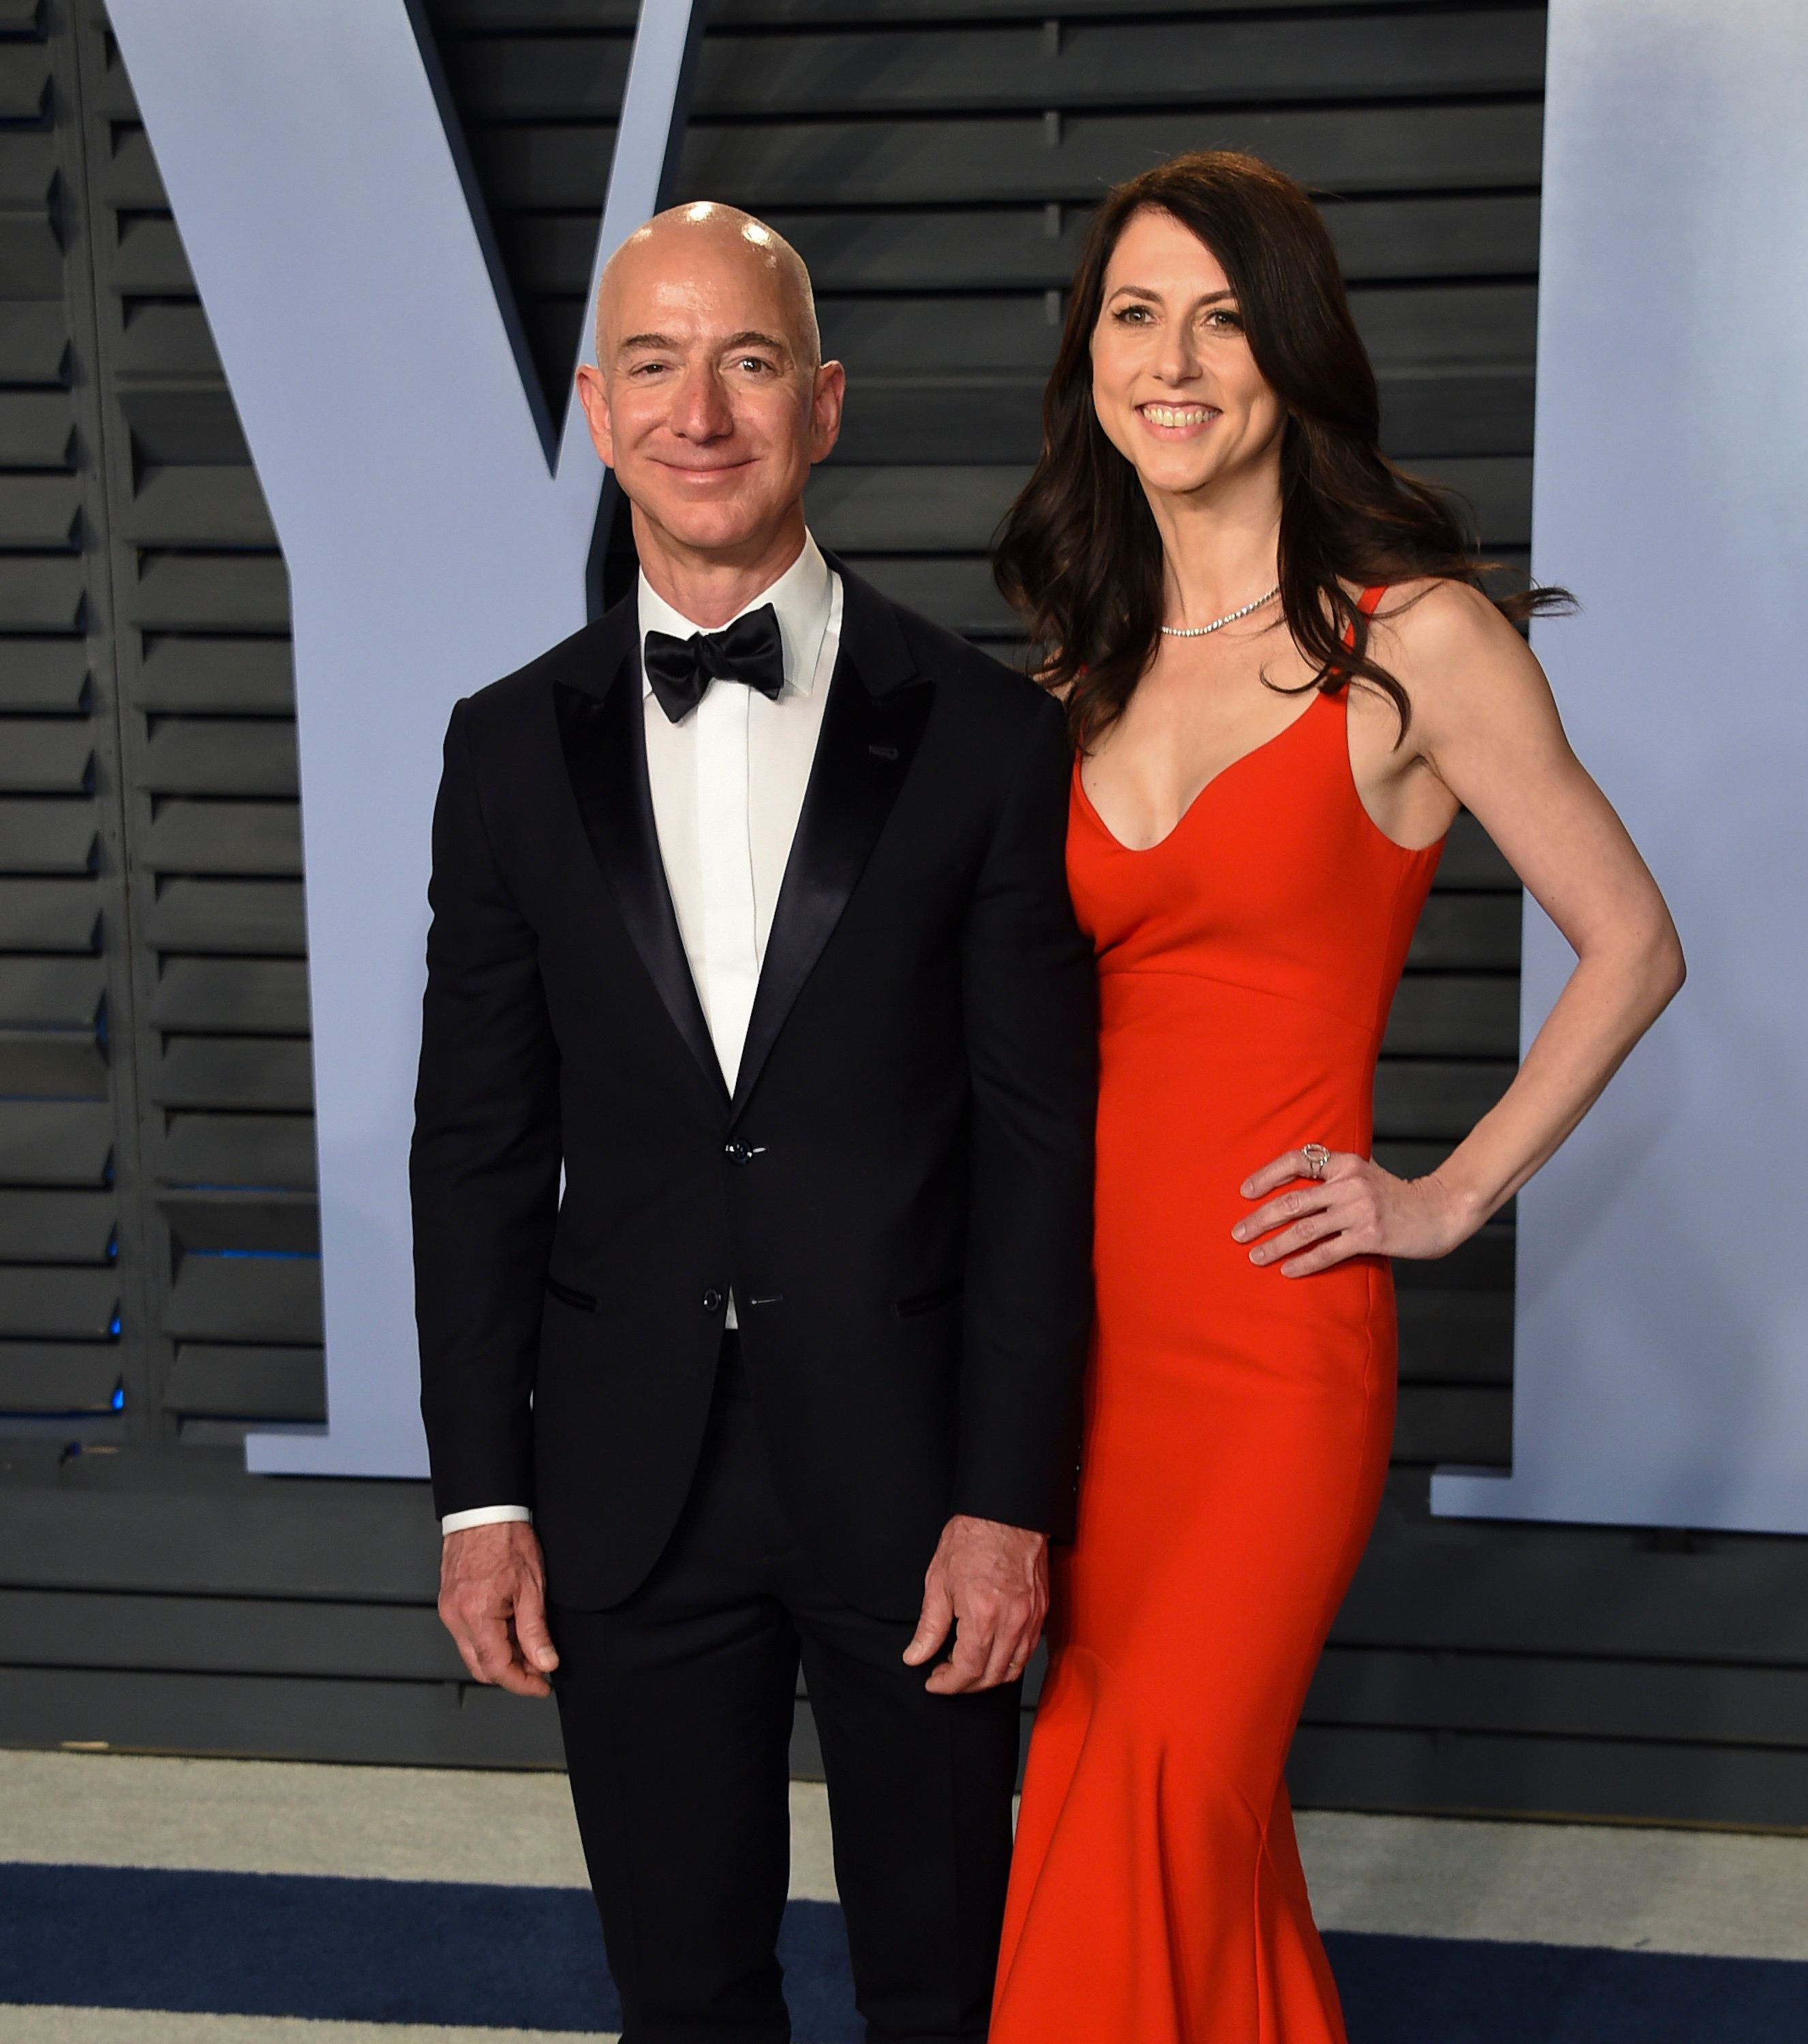 Jeff Bezos, left, and wife MacKenzie Bezos arrive at the Vanity Fair Oscar Party on Sunday, March 4, 2018, in Beverly Hills, Calif. (Photo by Evan Agostini/Invision/AP)